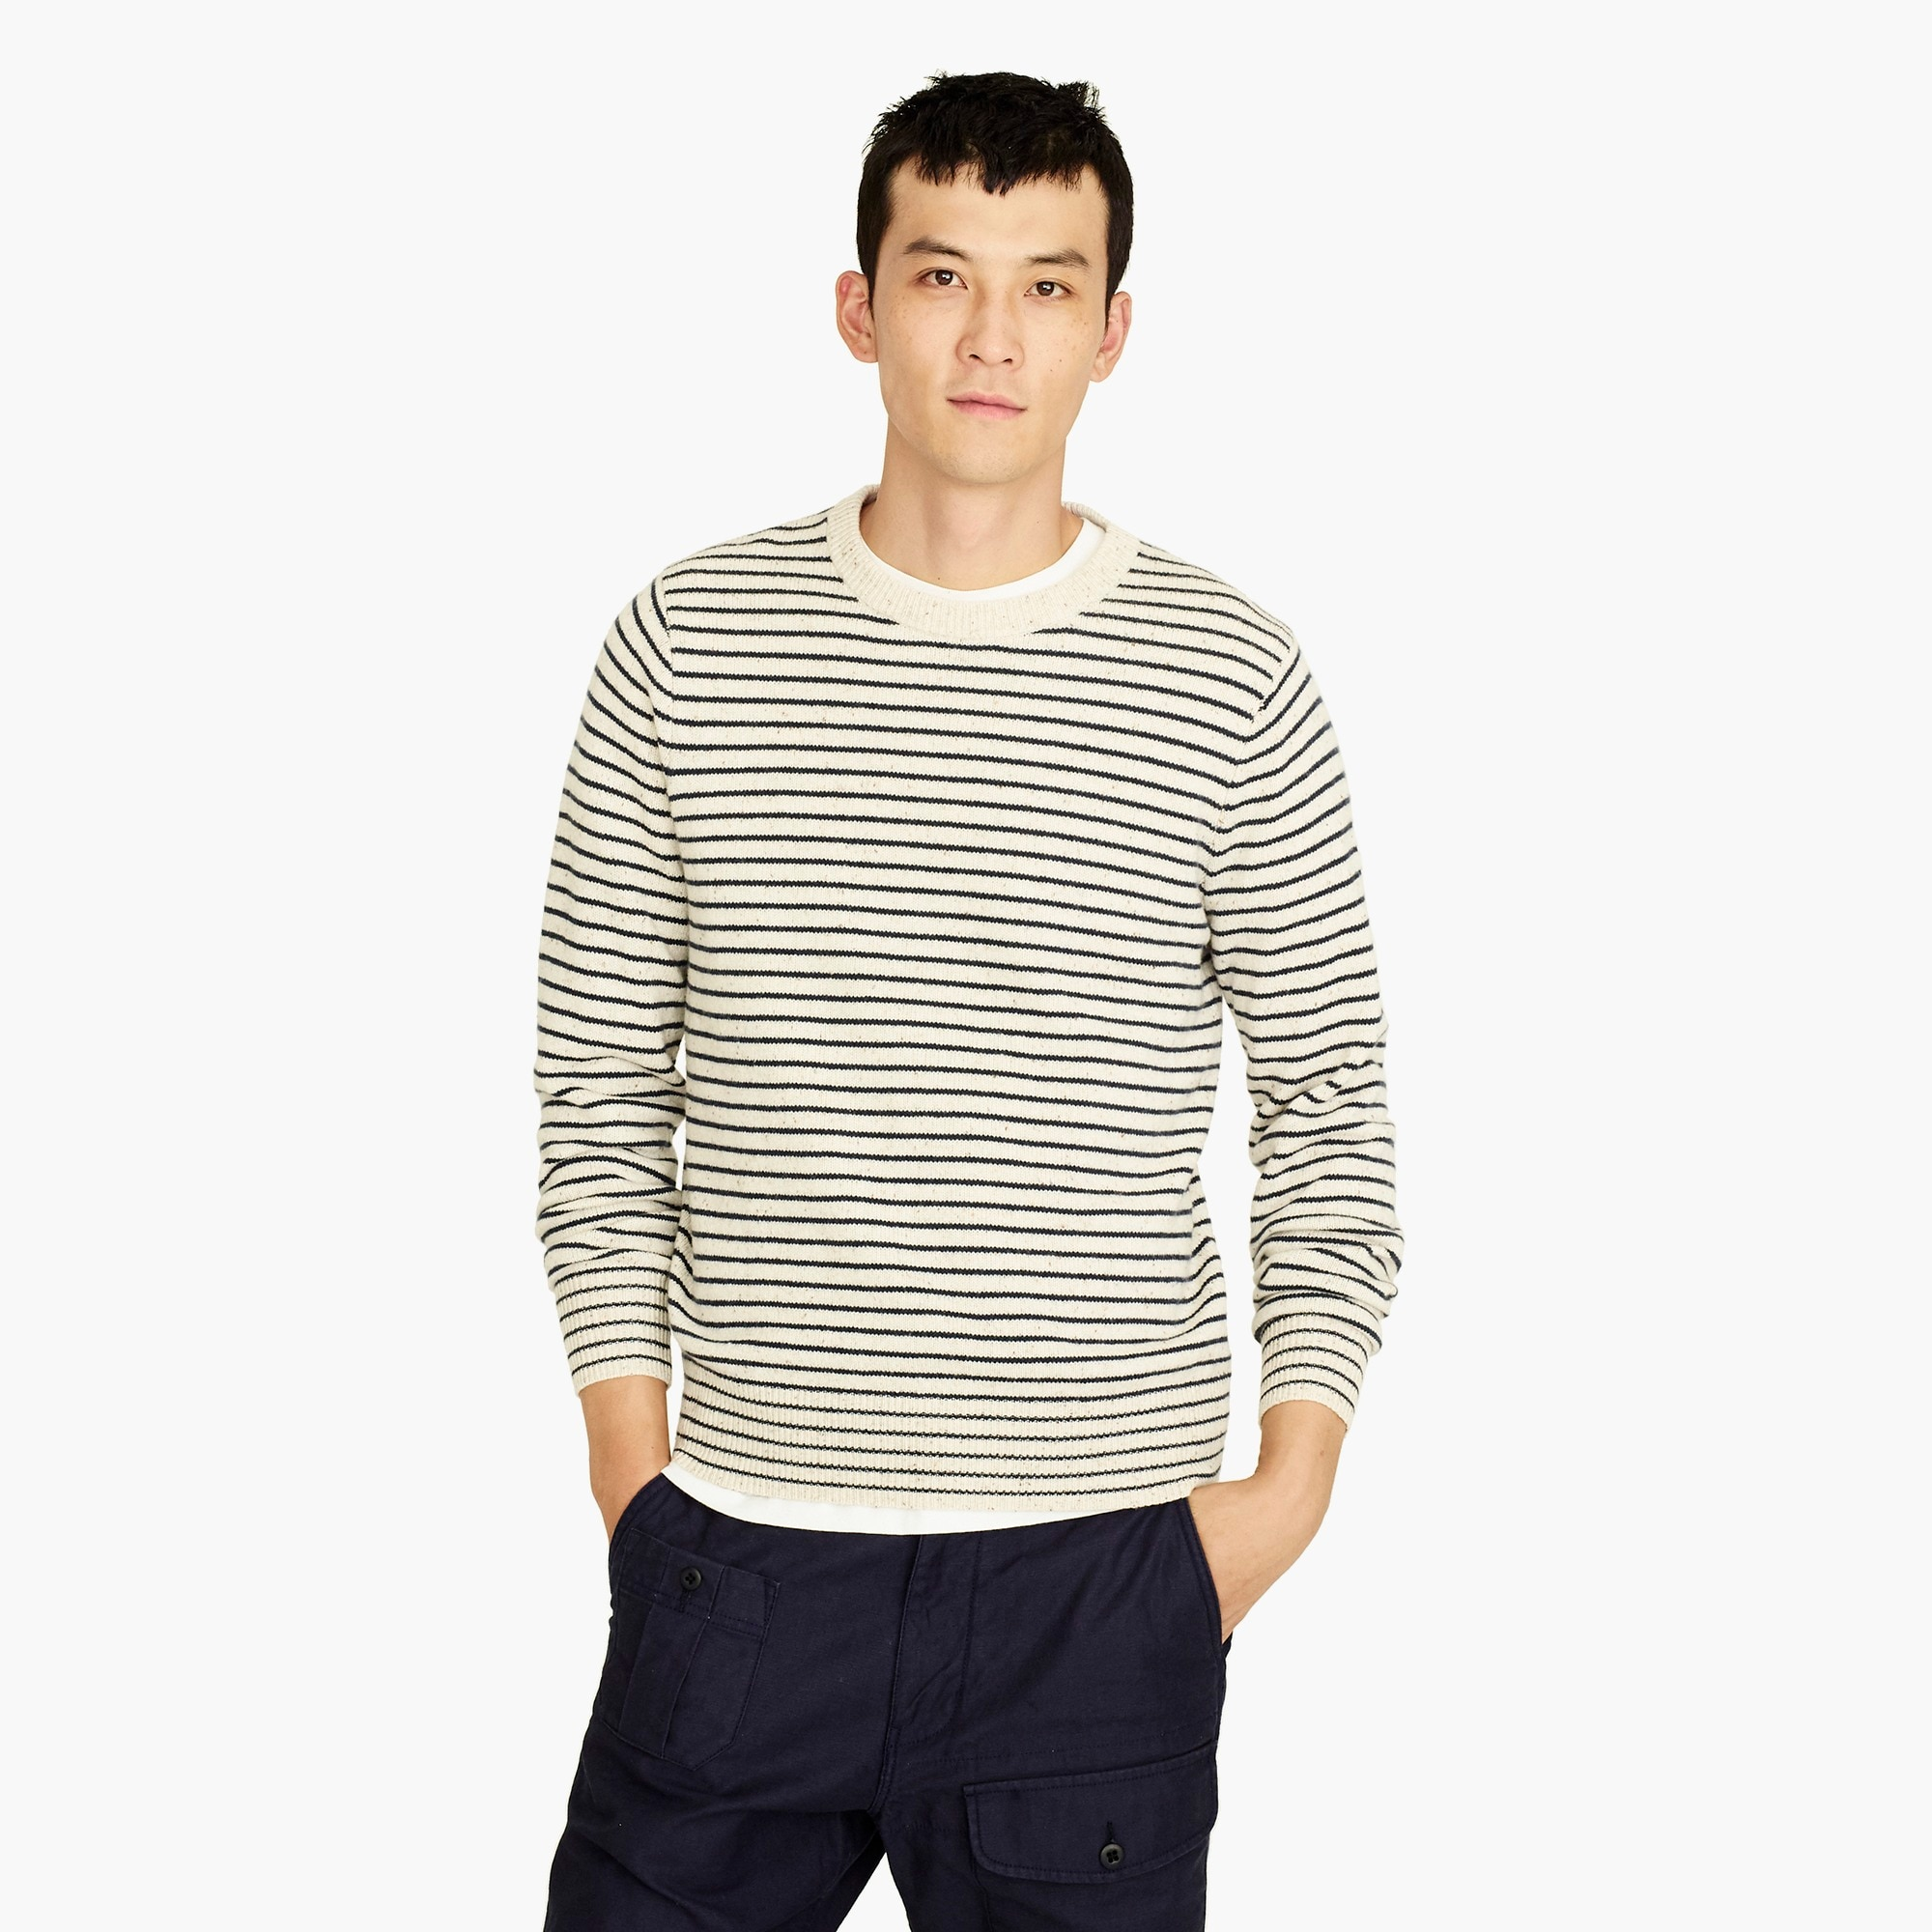 mens Rugged merino crewneck sweater in stripe